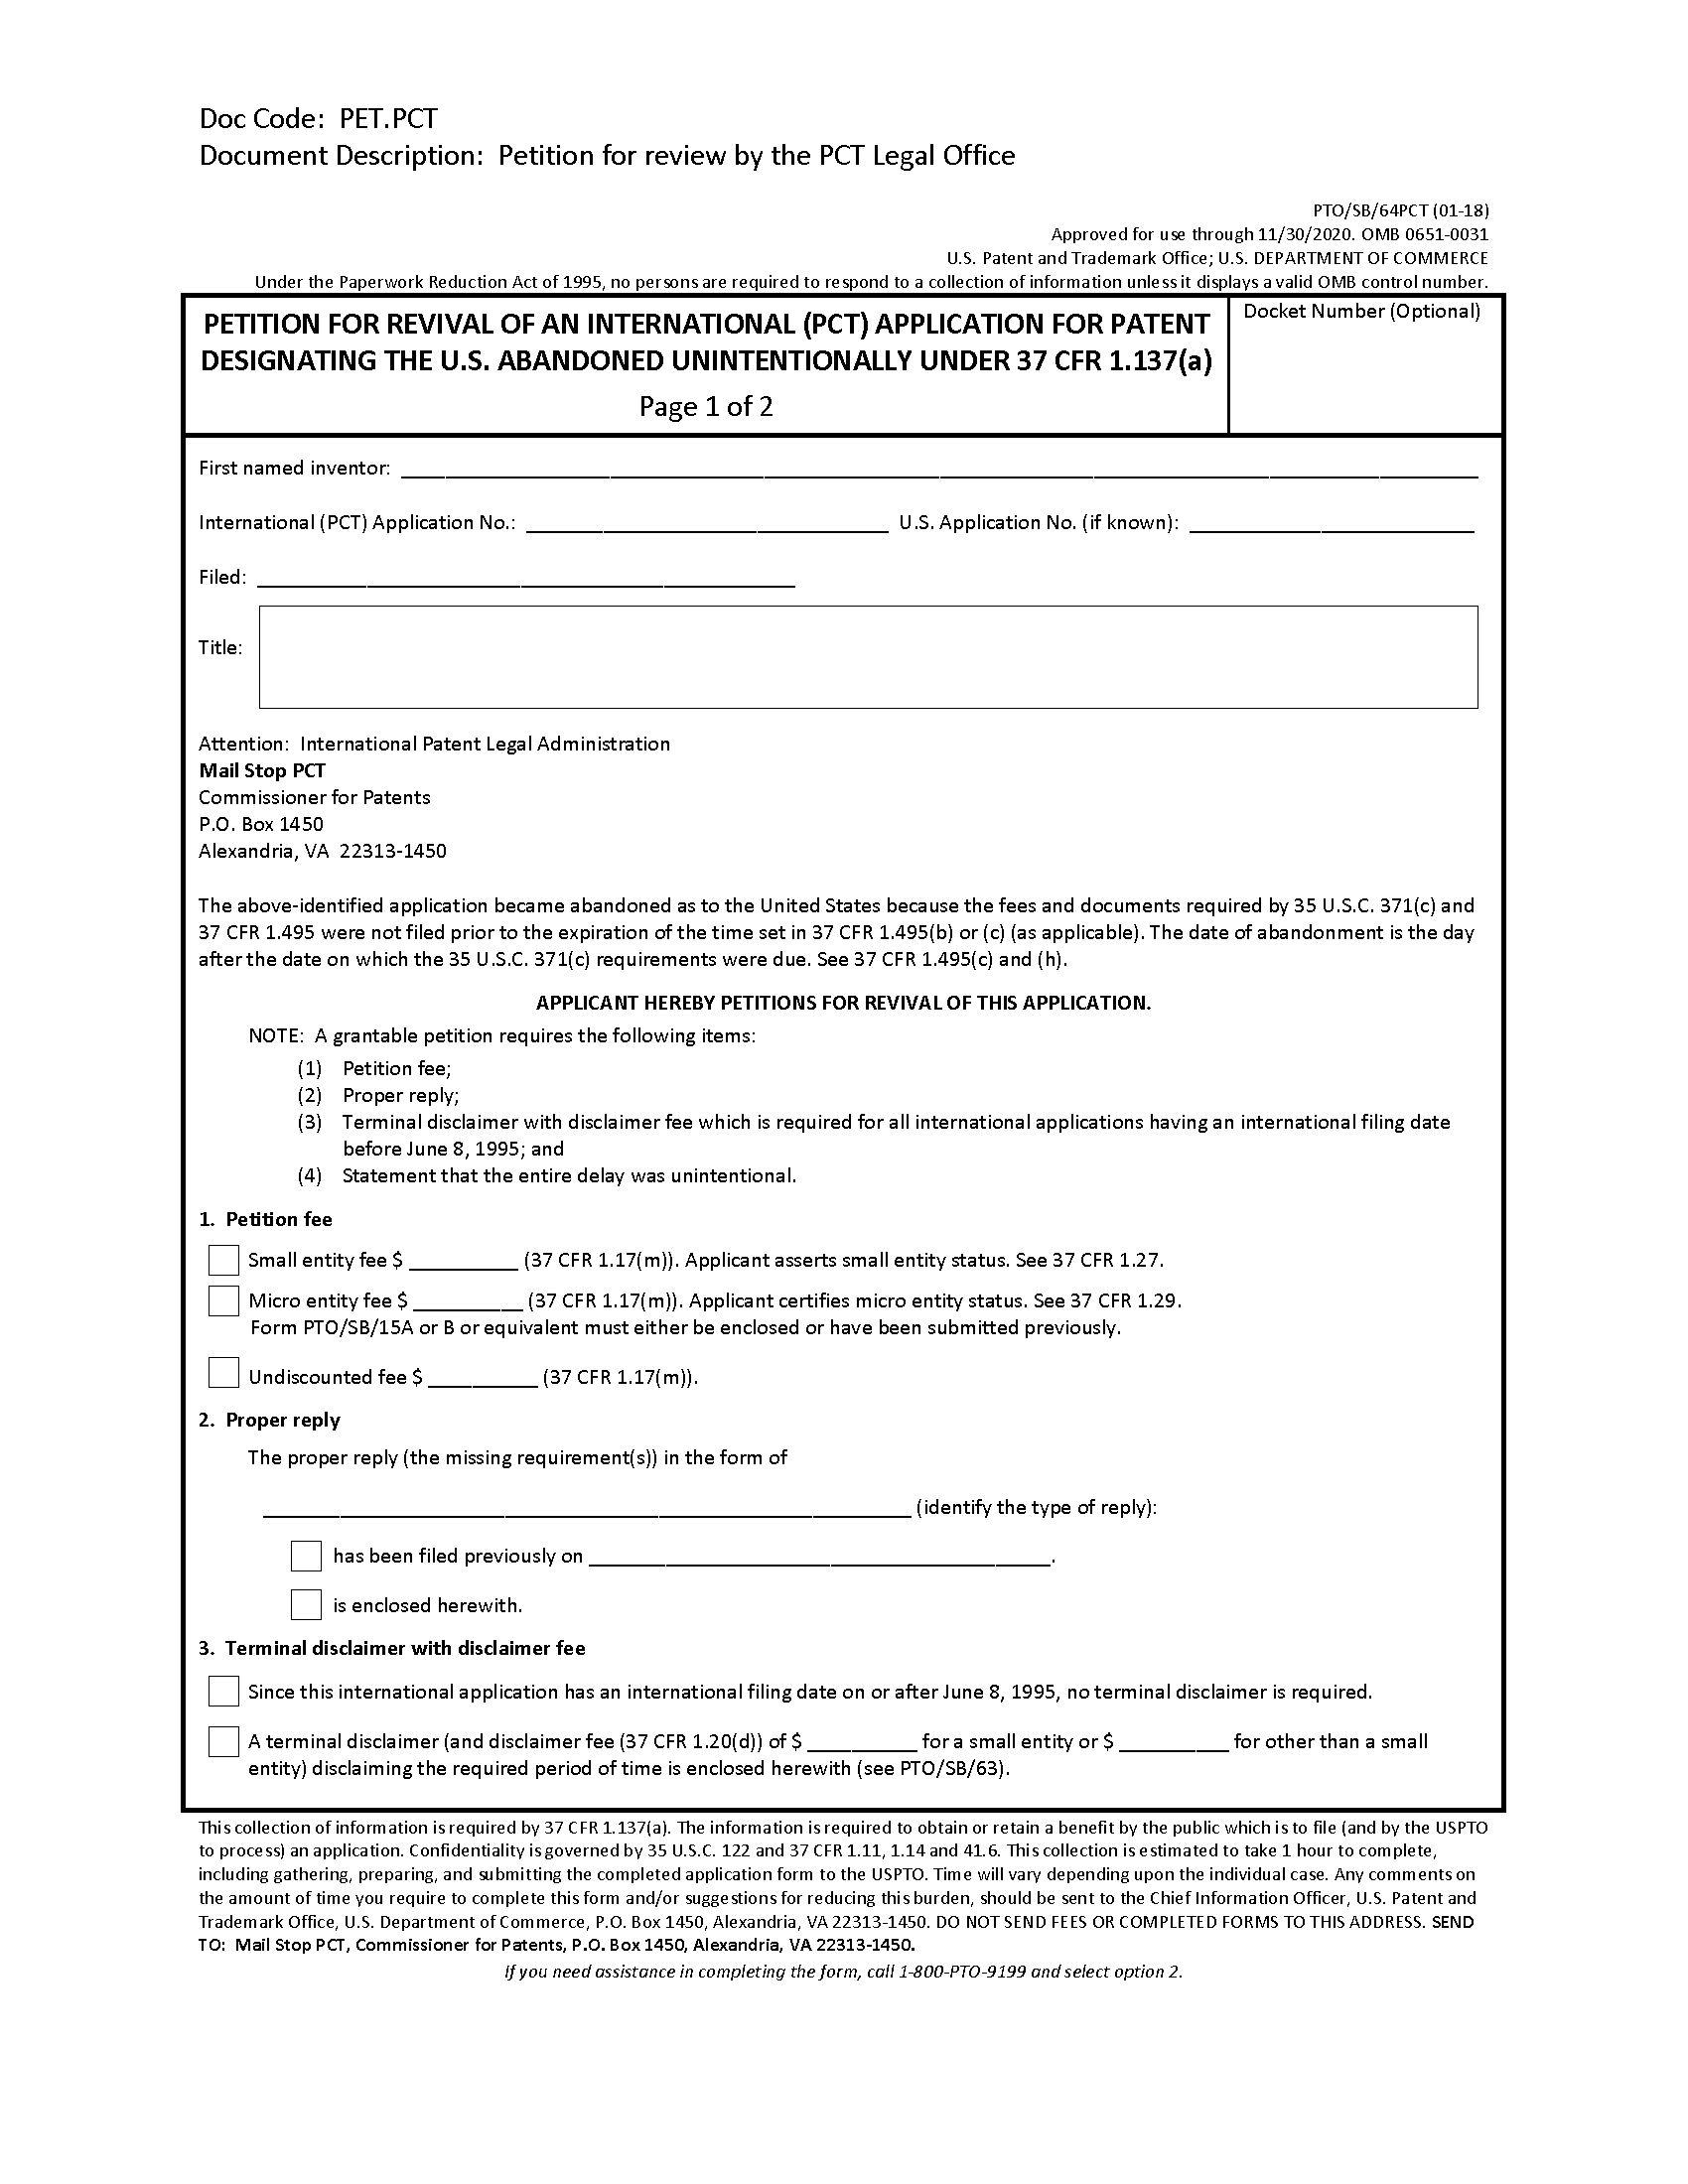 Form PTO/SB/64/PCT Petition For Revival Of An International Application For